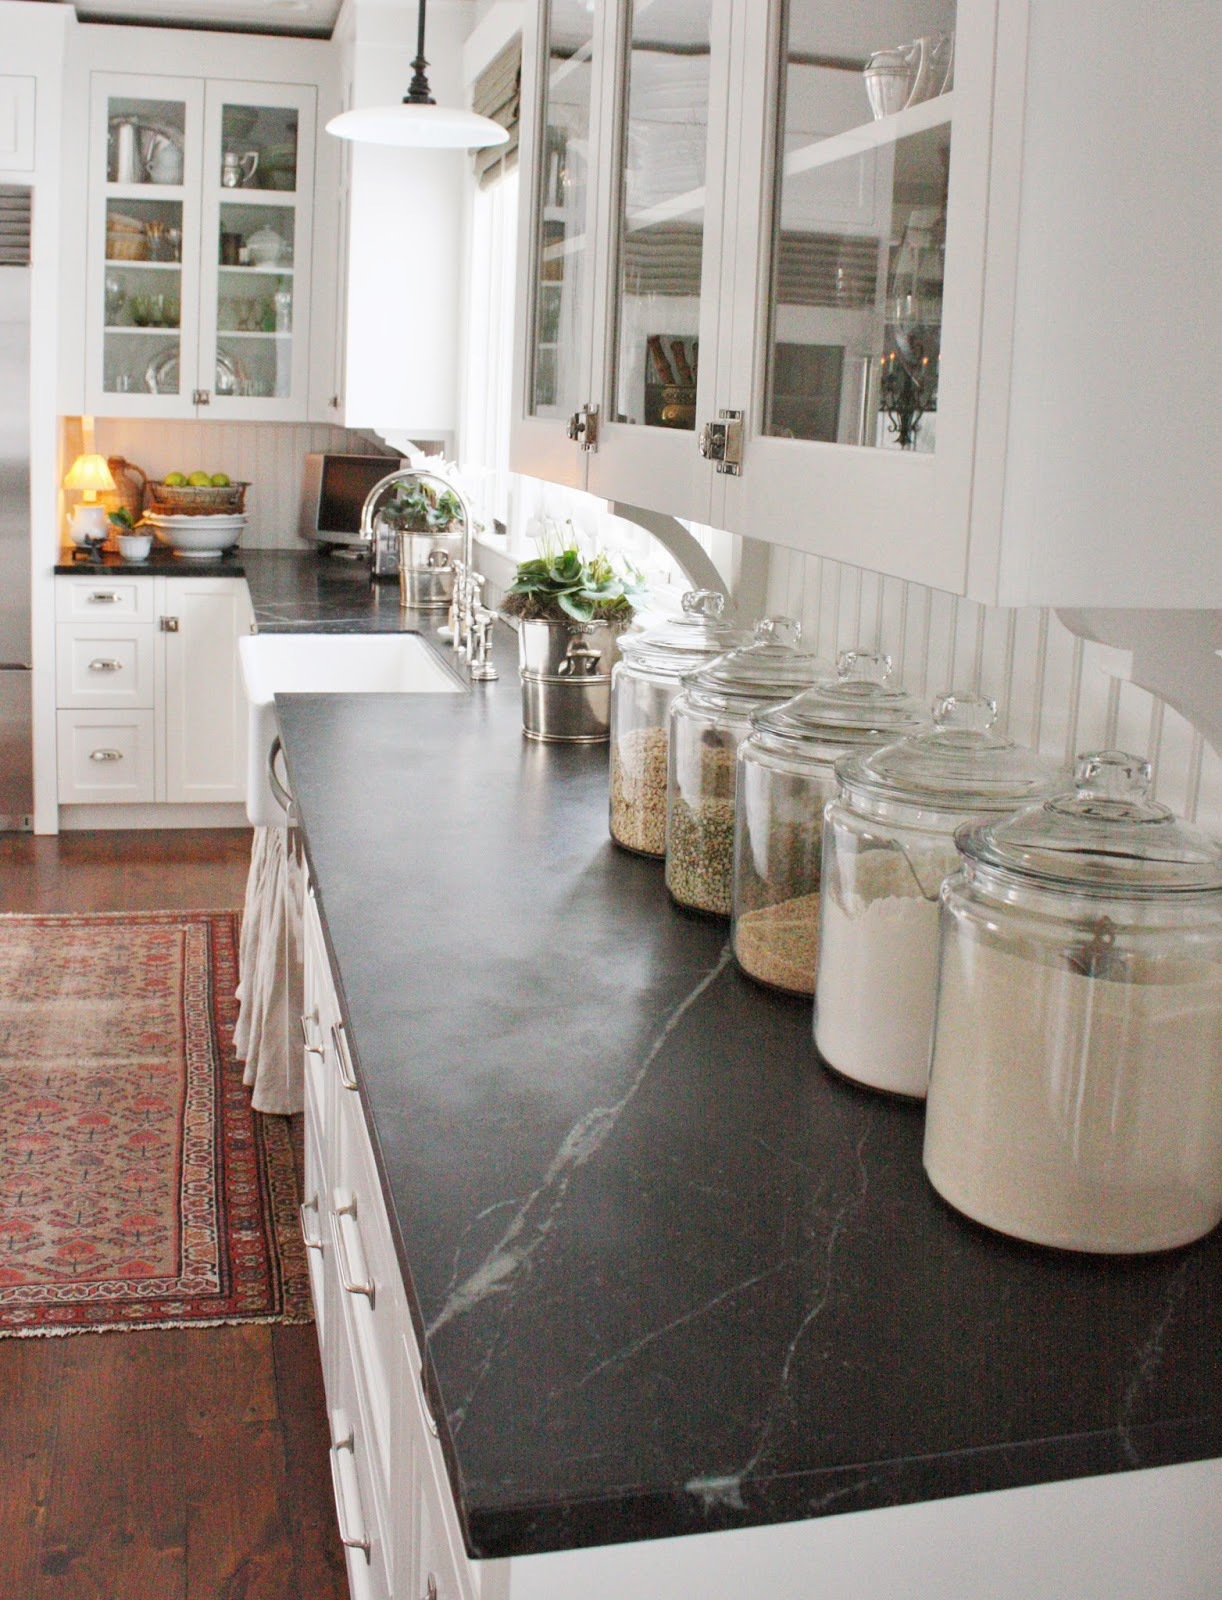 Anderson grant decorating with glass canisters in the for Kitchen counter decor